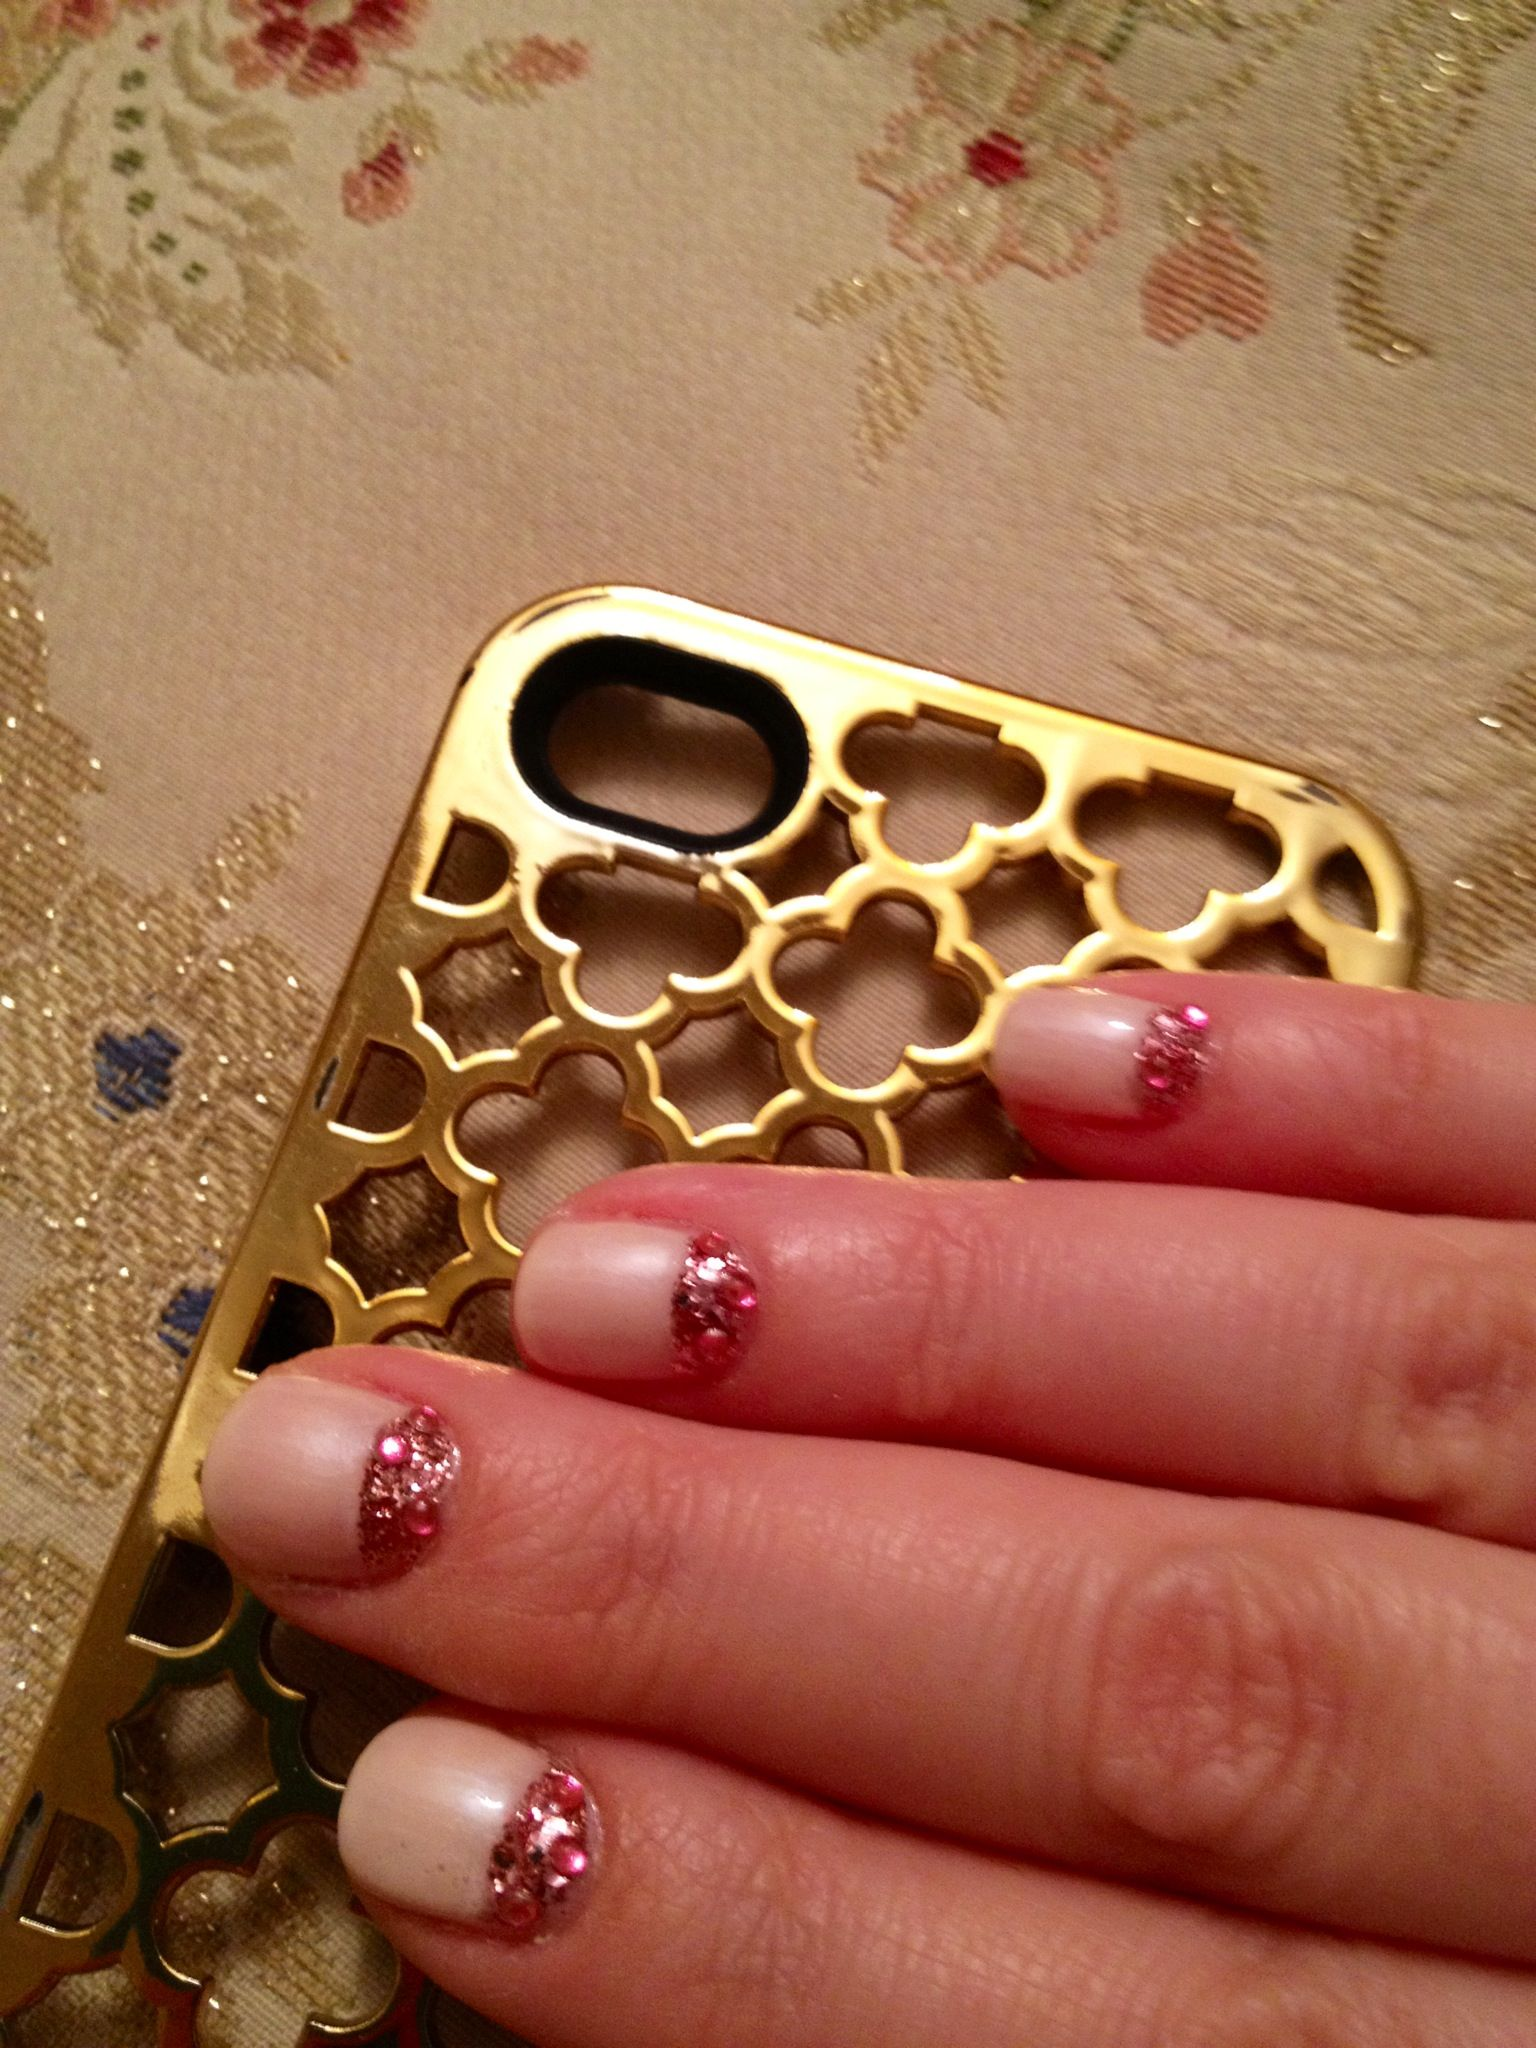 Pink half moon nails with glitter and rhinestones